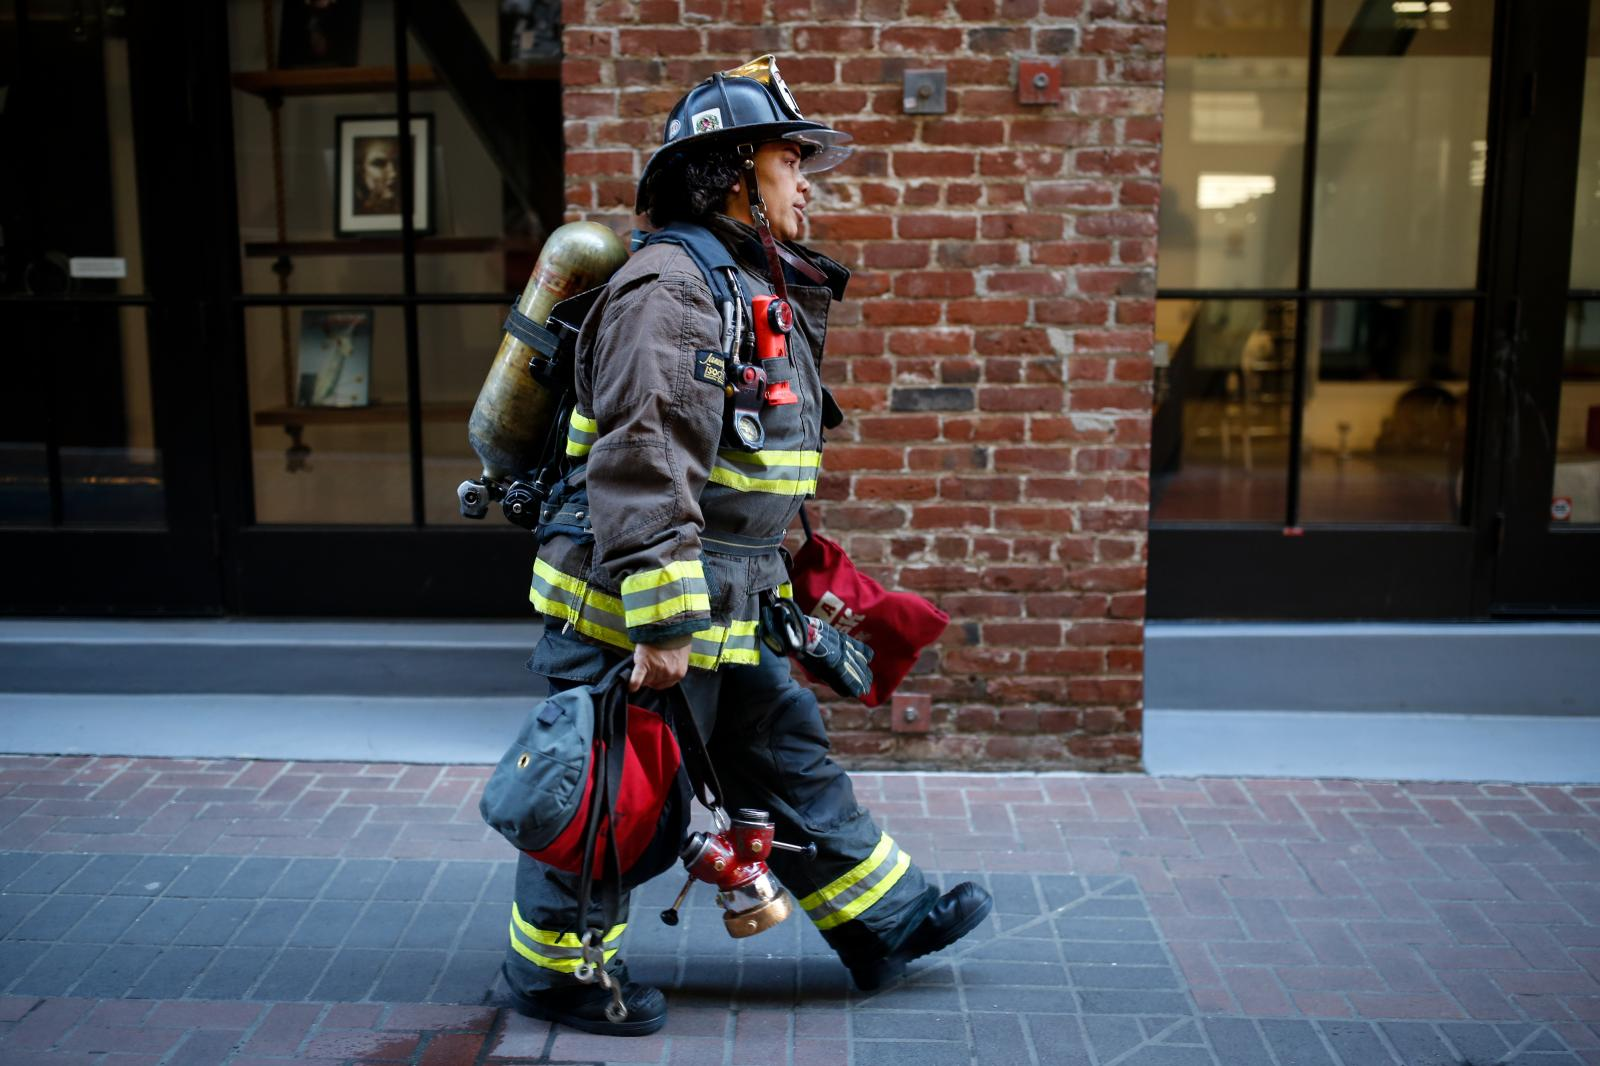 Lt. Julie DeJarlais walks back to the engine after determining a building alarm was accidentally triggered in downtown San Francisco.